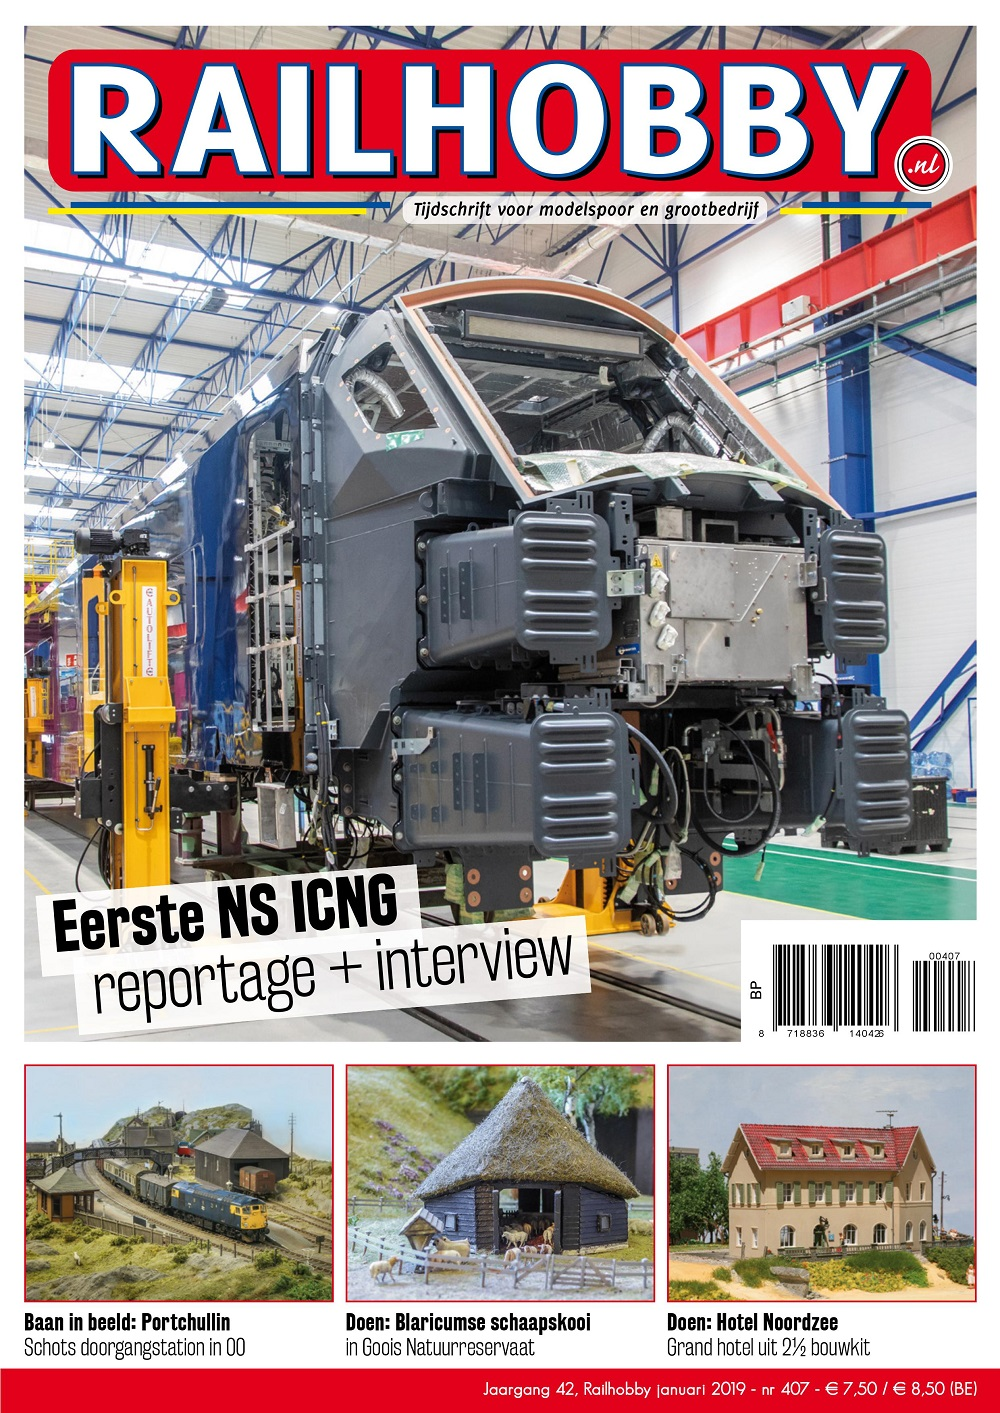 Railhobby, Eerste NS ICNB reportage+interview